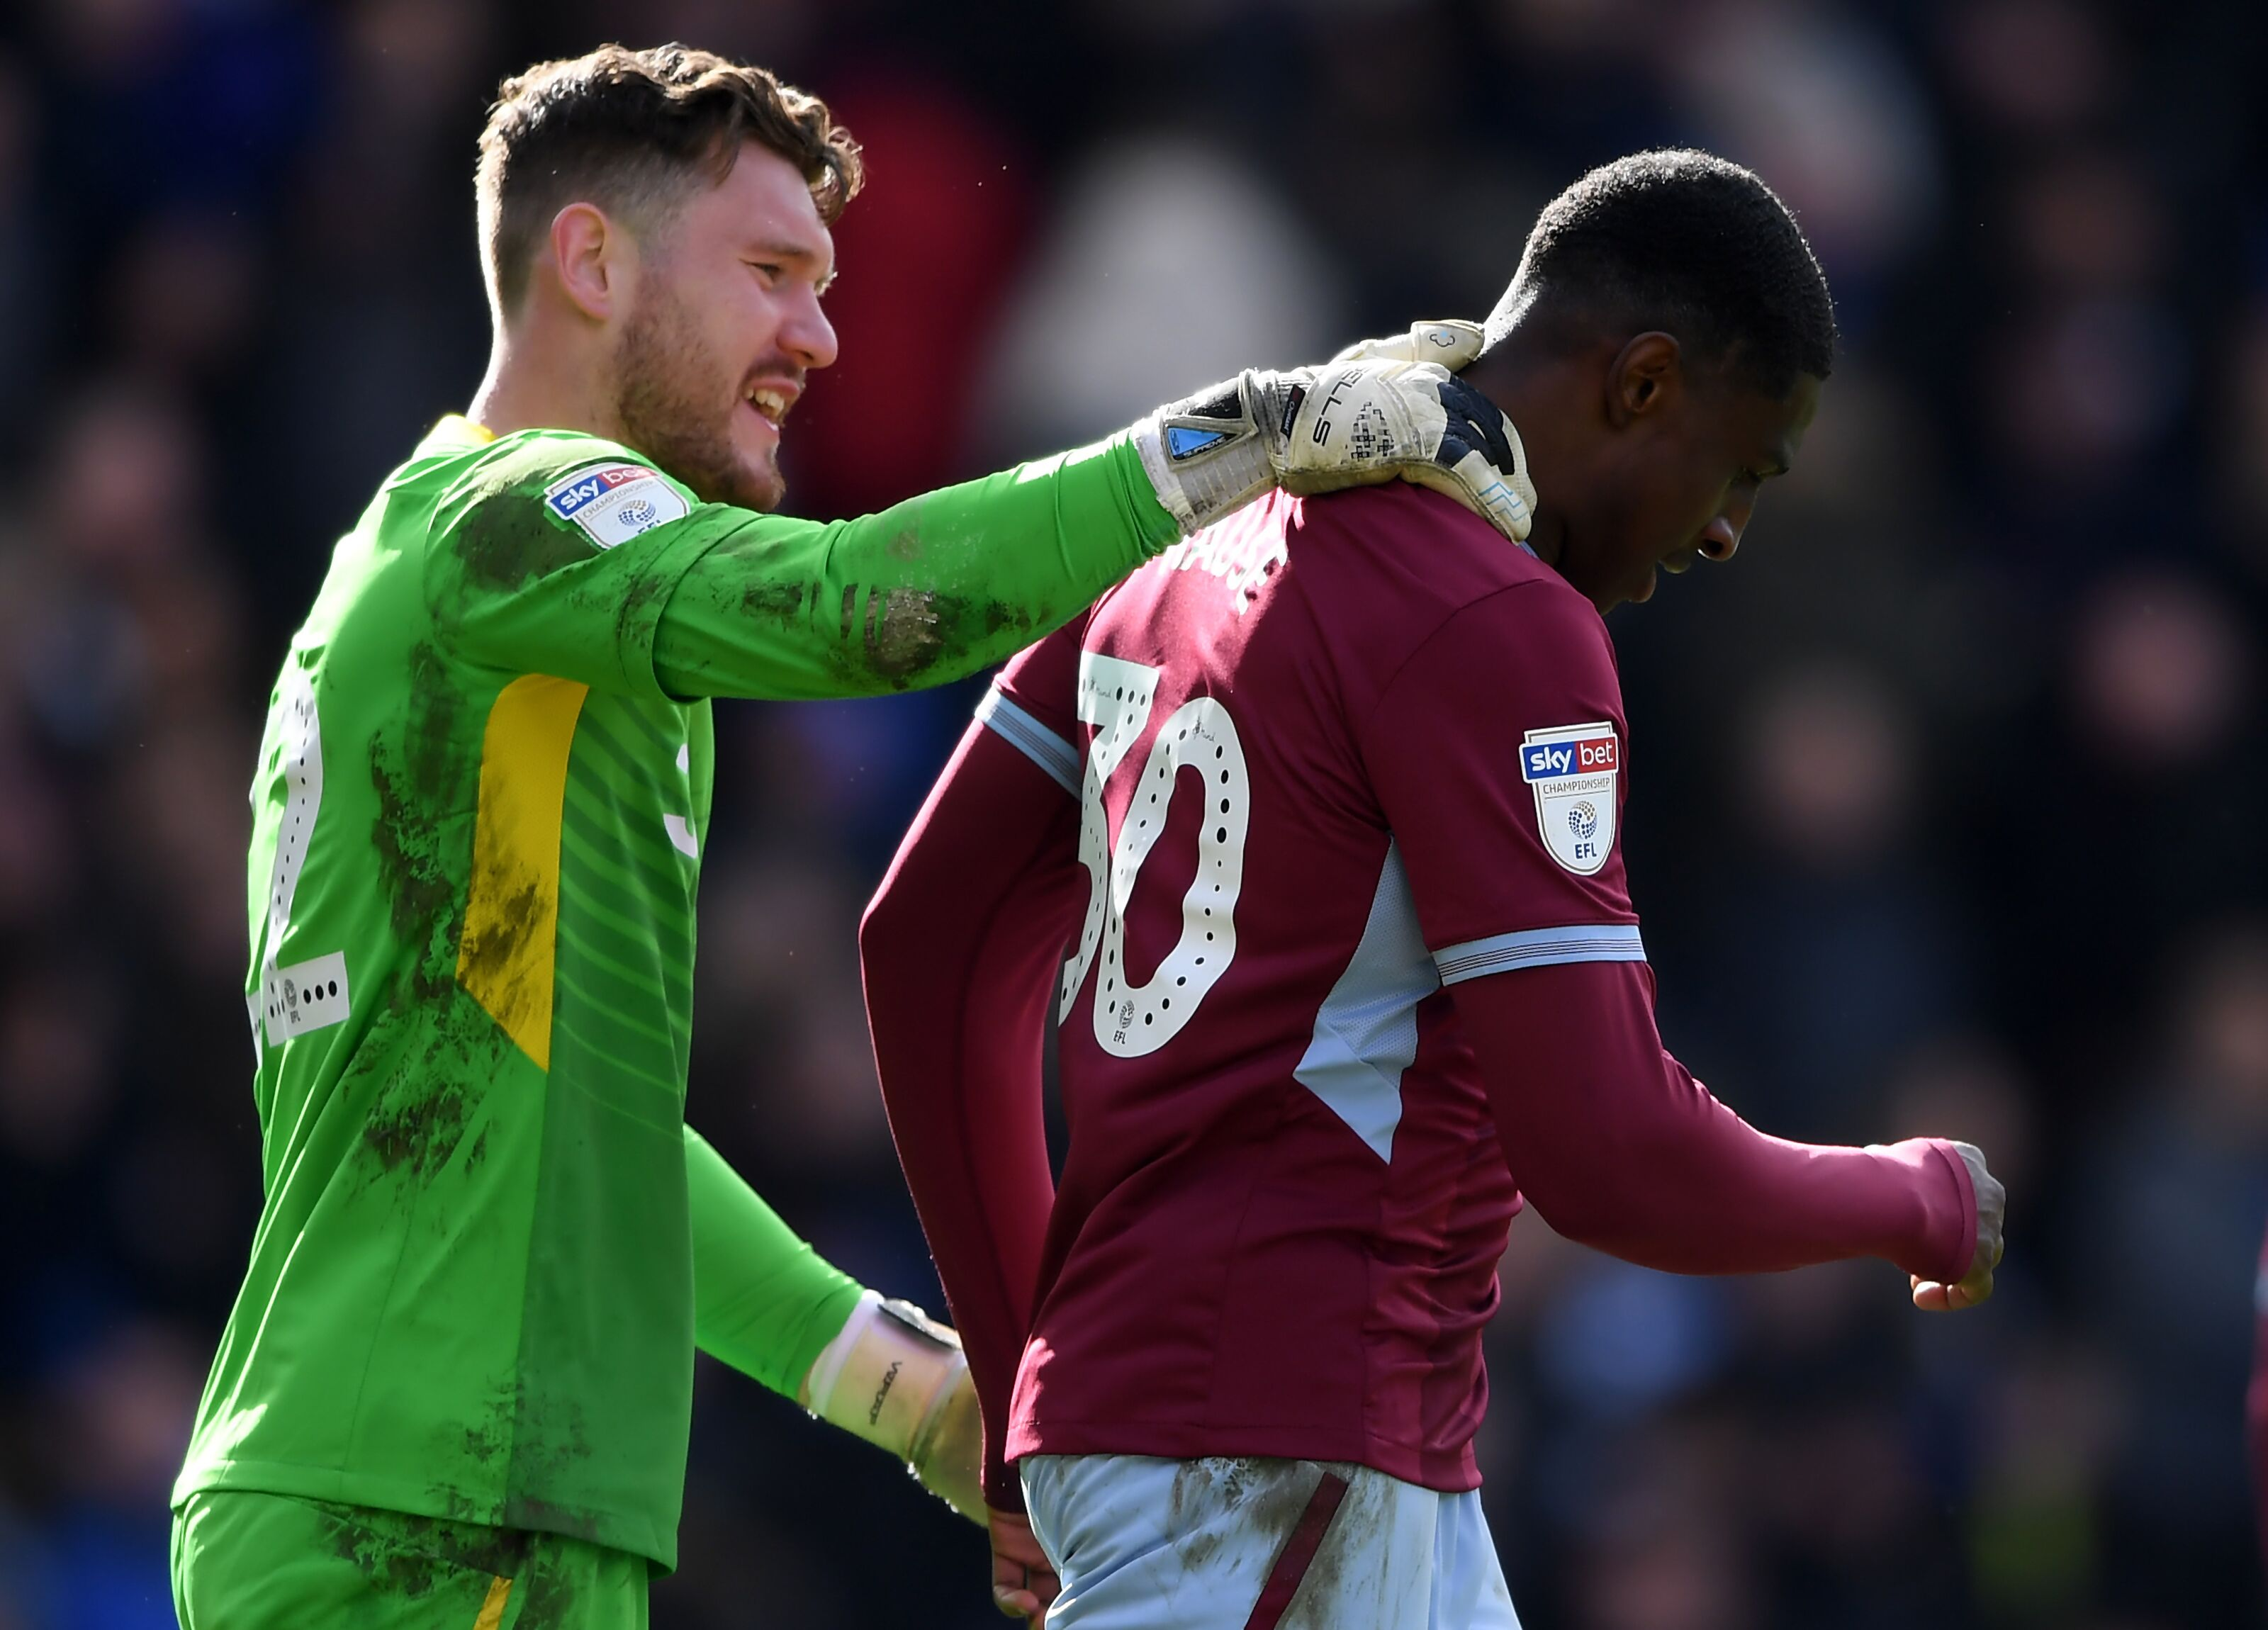 Aston Villa: Jed Steer, The Unlikely No. 1 Goalkeeper Again